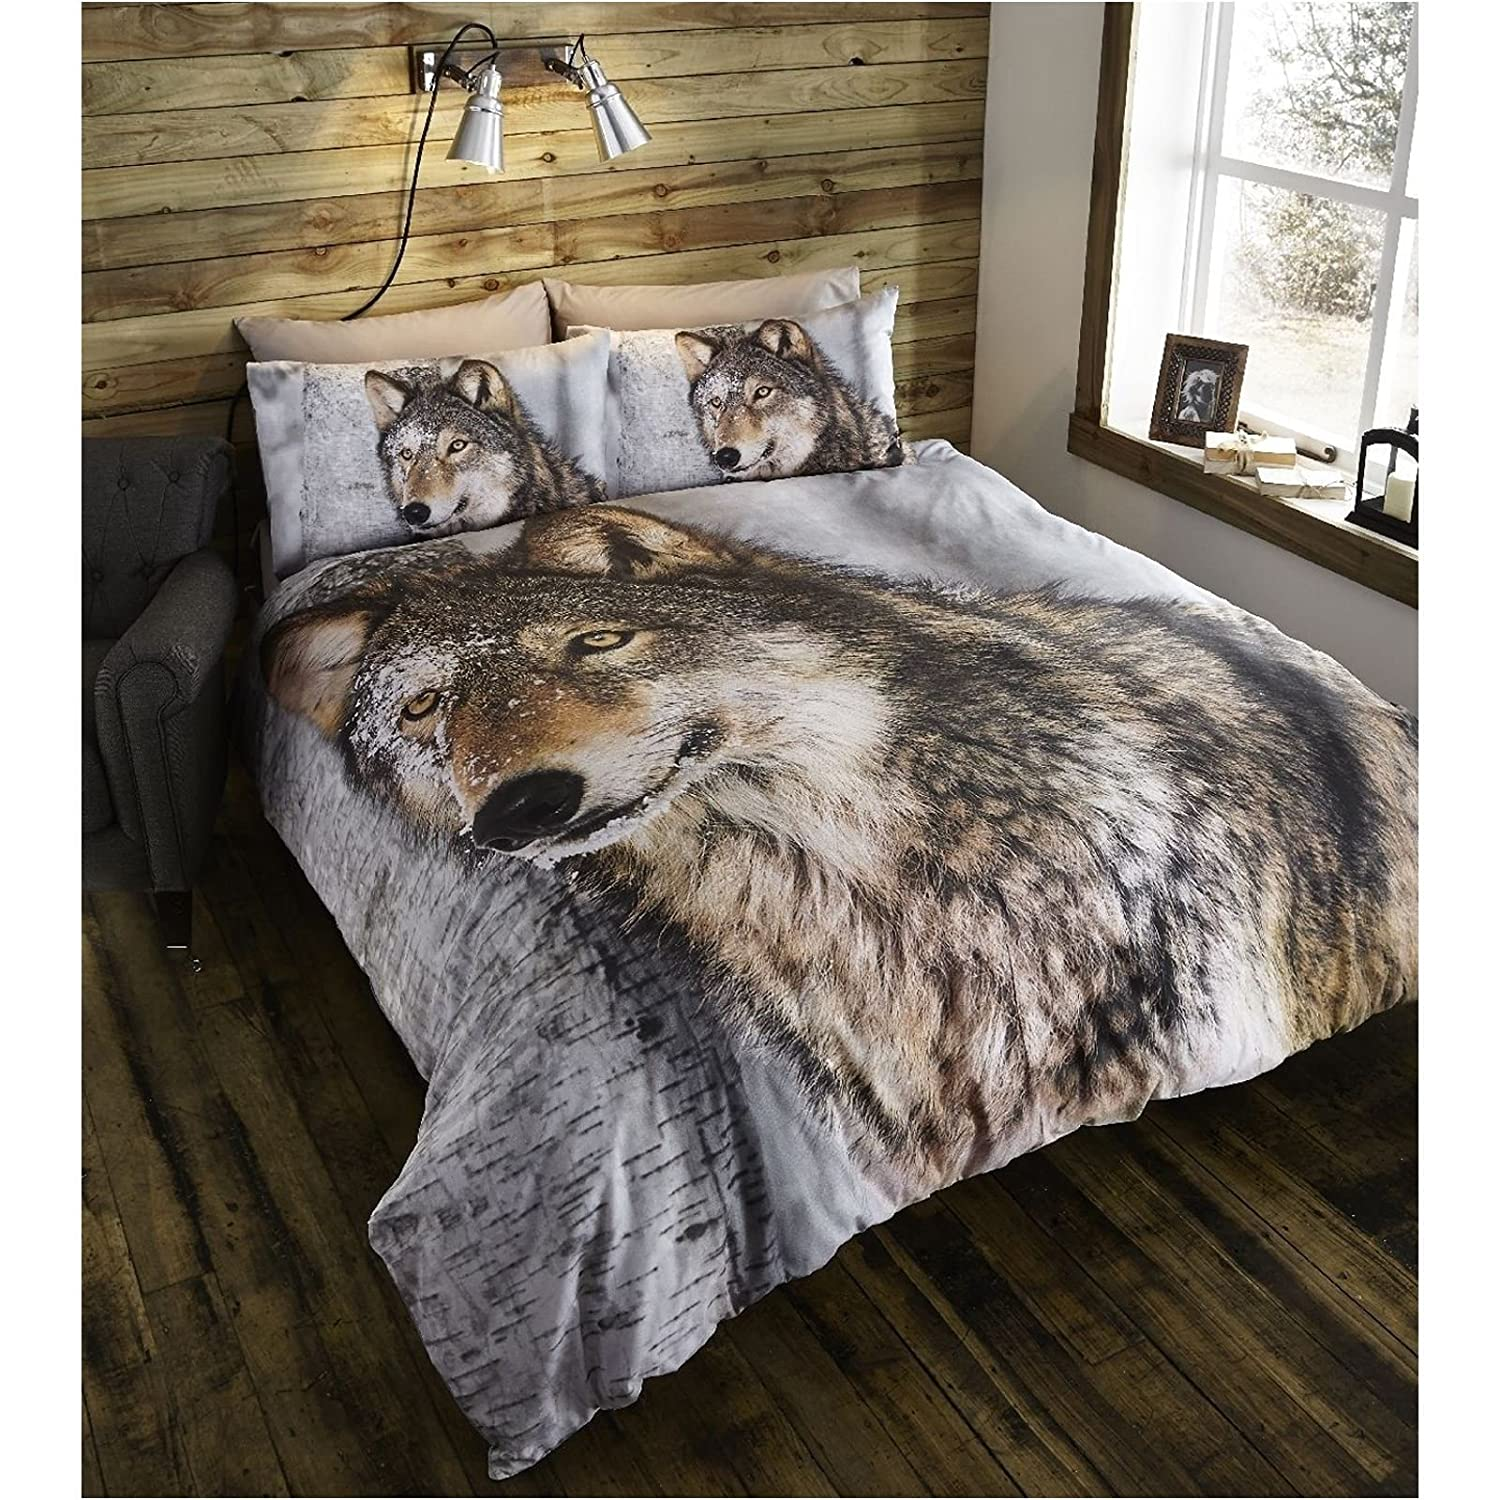 WOLF SINGLE DUVET COVER SET 100/% COTTON EUROPEAN BEDDING WILDLIFE